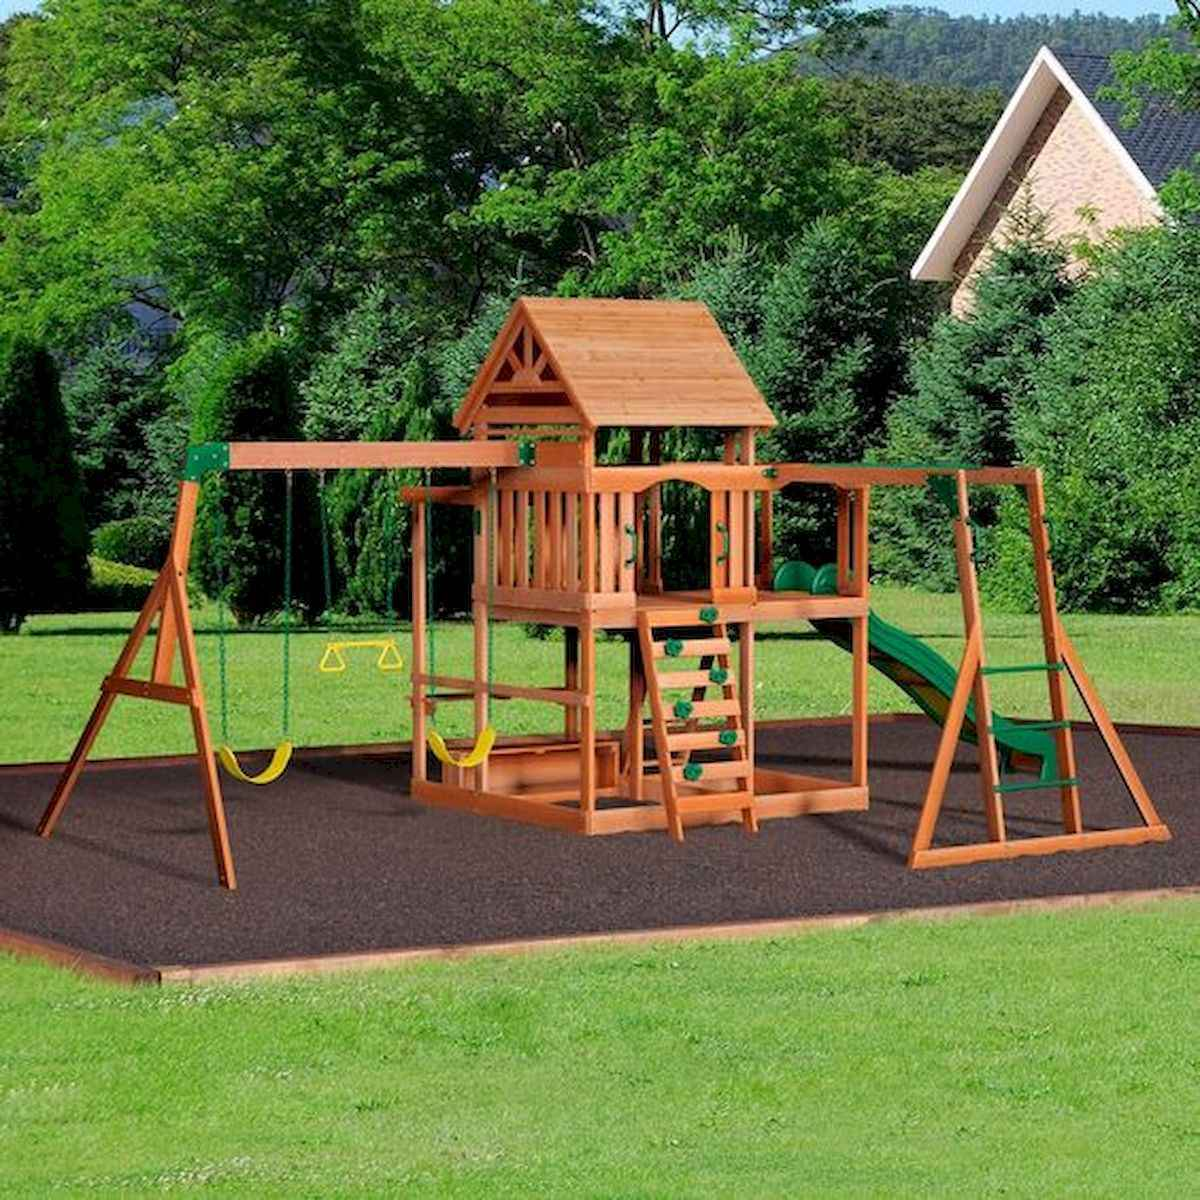 30 Fantastic Backyard Kids Ideas Play Spaces Design Ideas And Remodel (29)